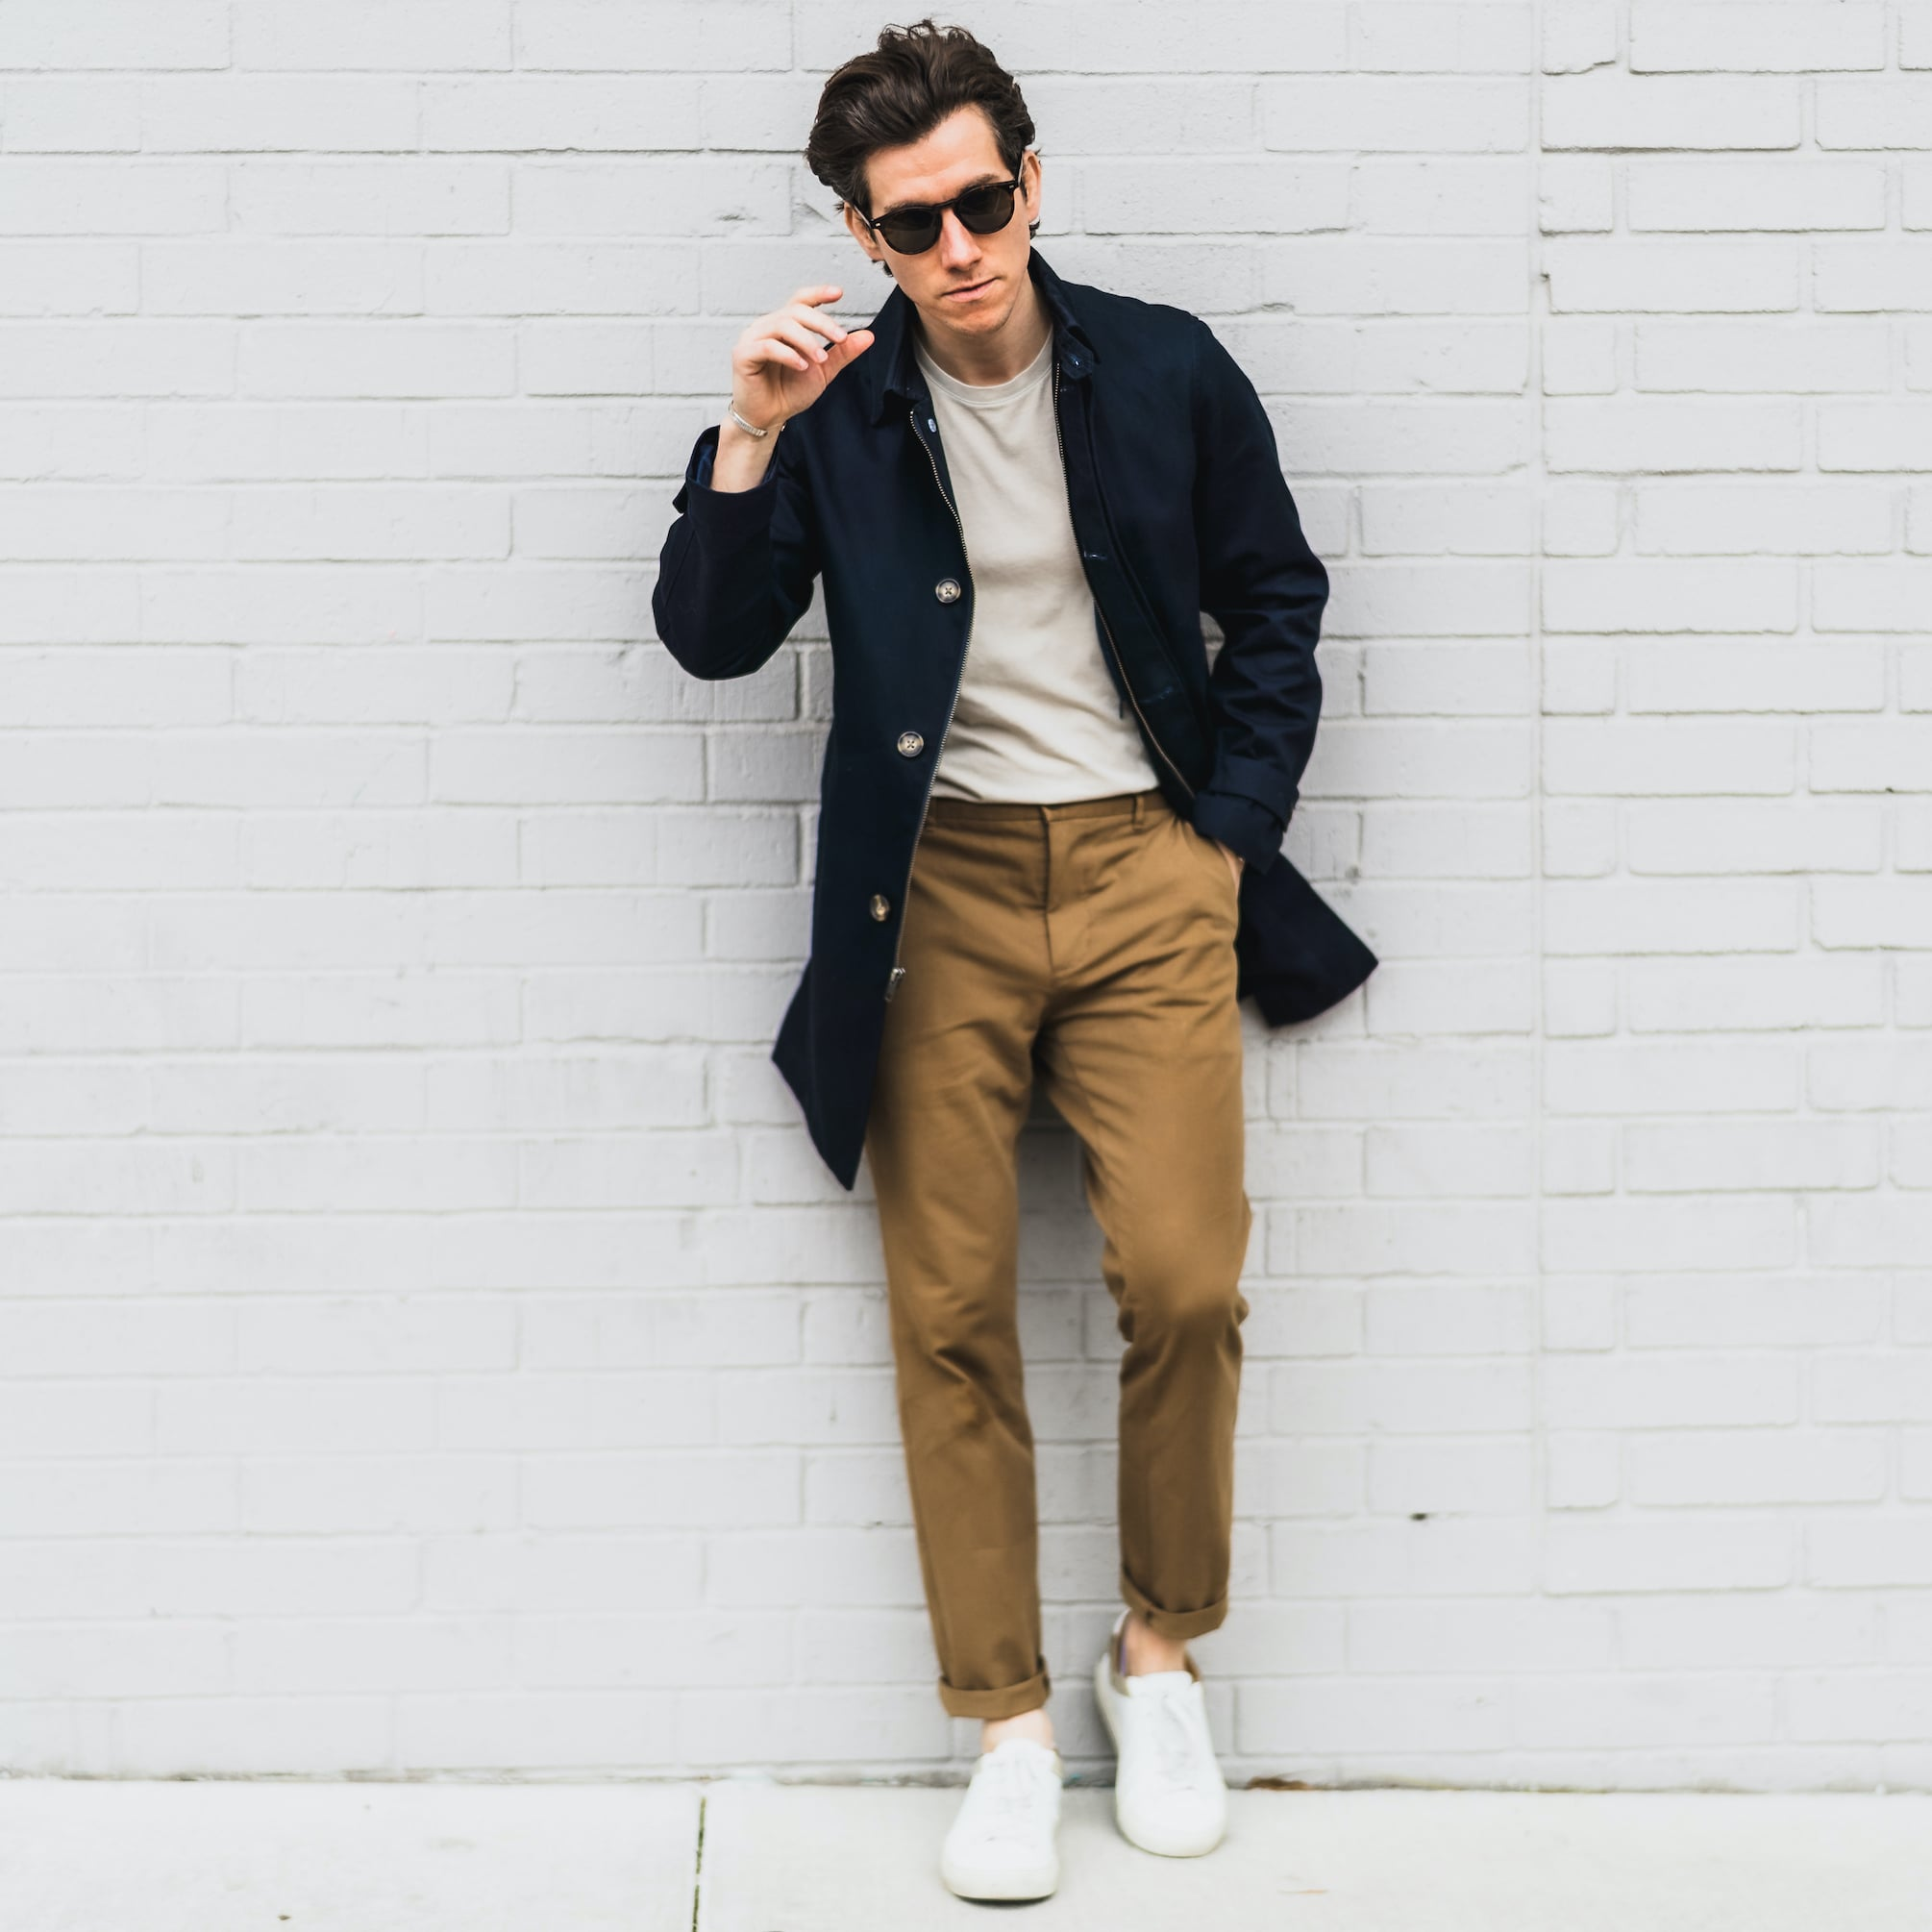 7 Best Men's Spring Jackets for 2020 (and Beyond) - The ...